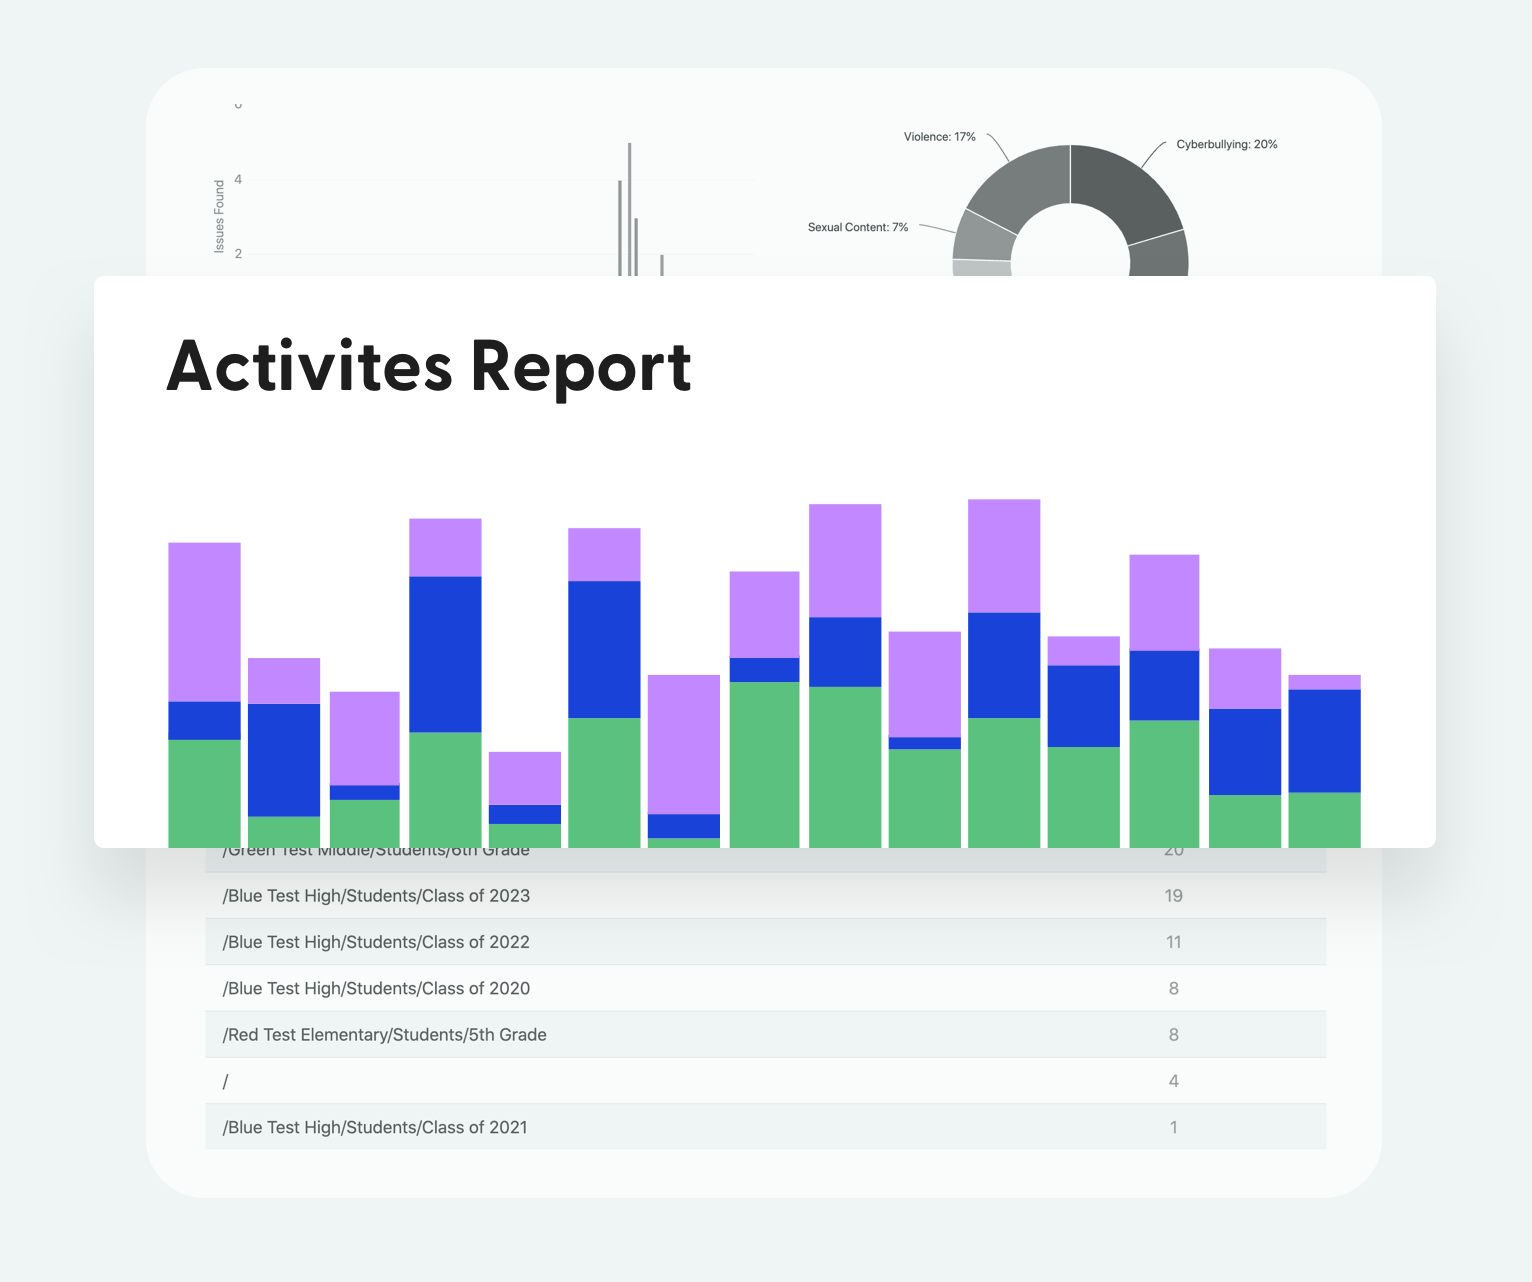 Illustration of a report of activities with a colorful segmented bar chart